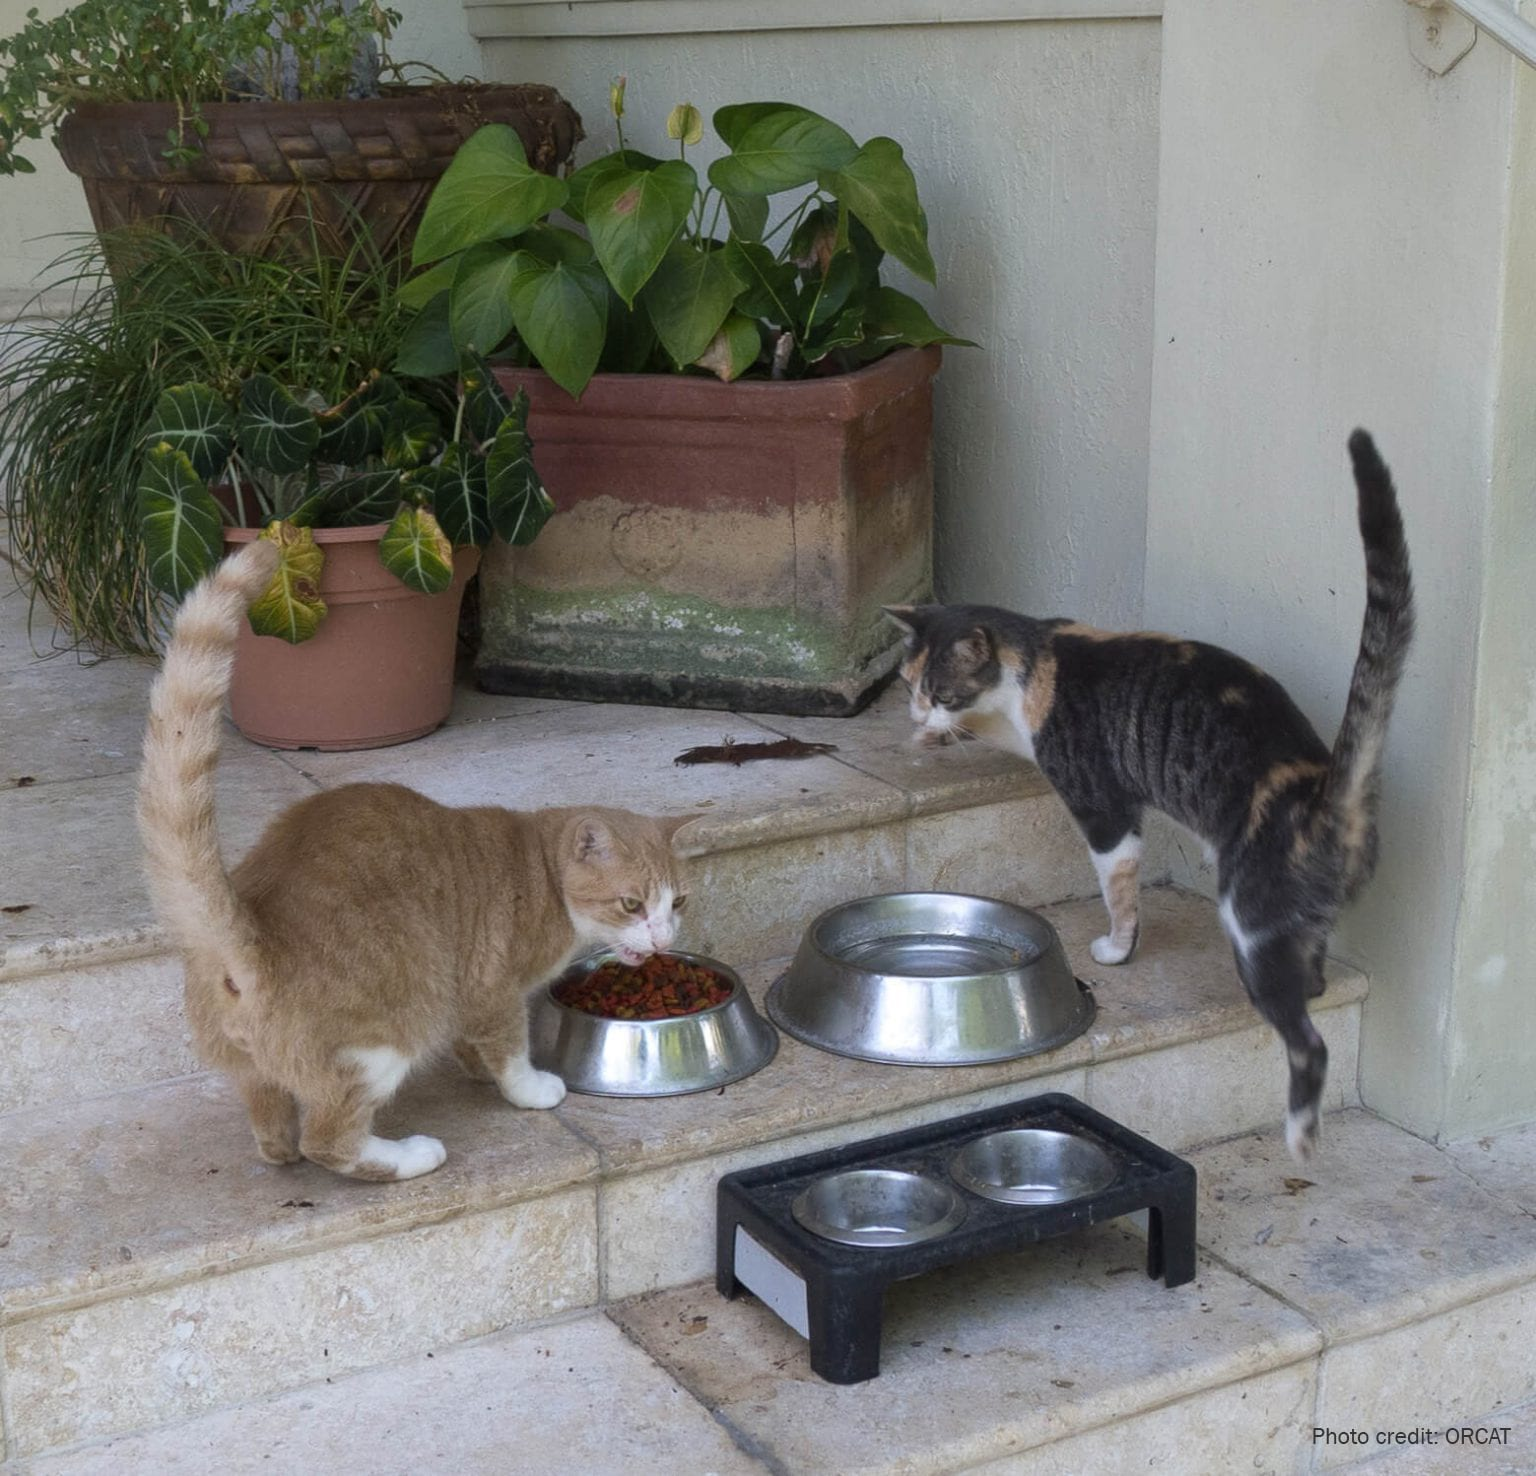 Feeding station for outdoor cats | Photo credit: ORCAT